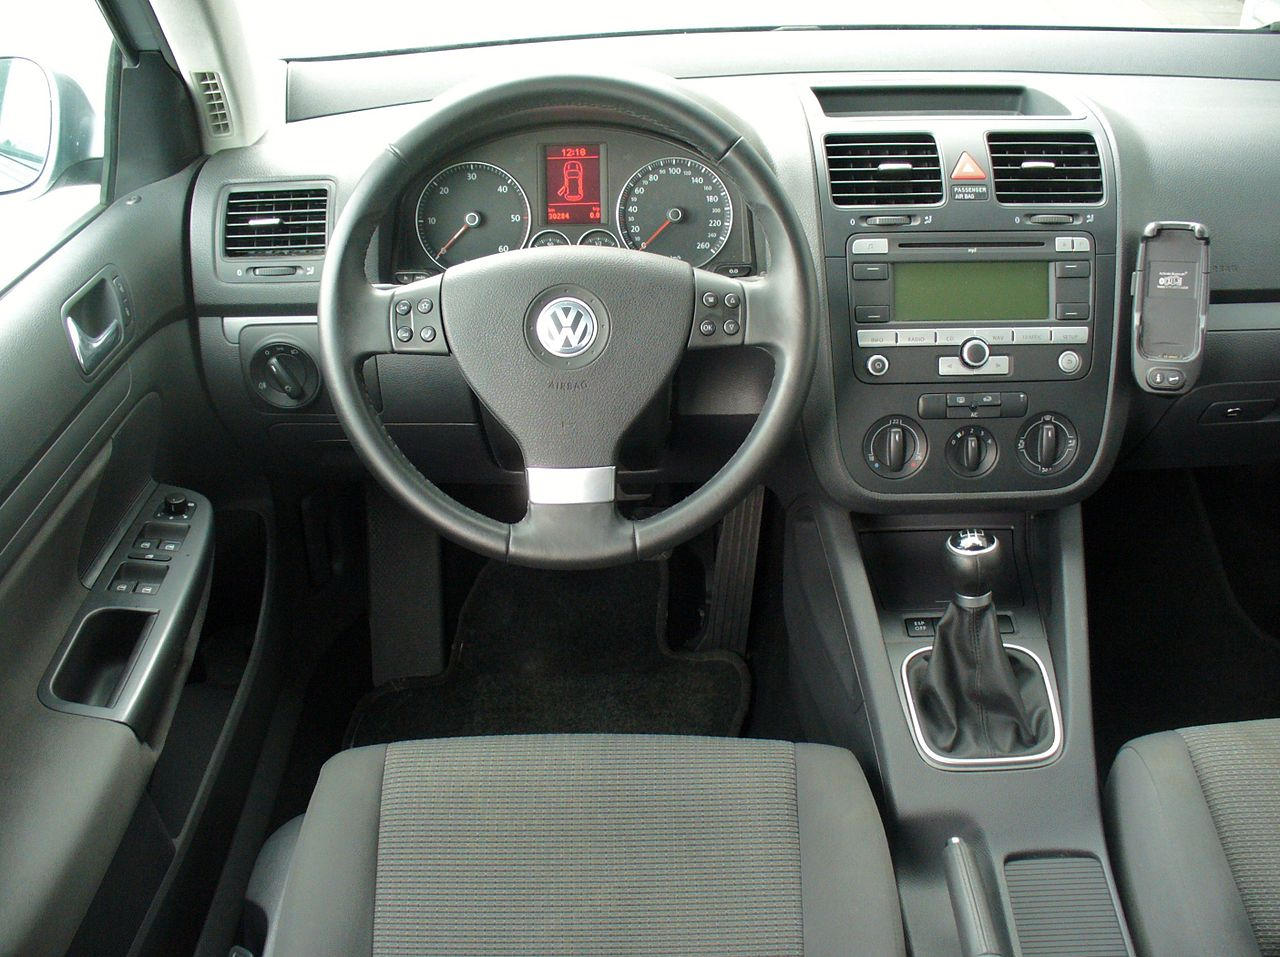 Volkswagen Golf 1 9